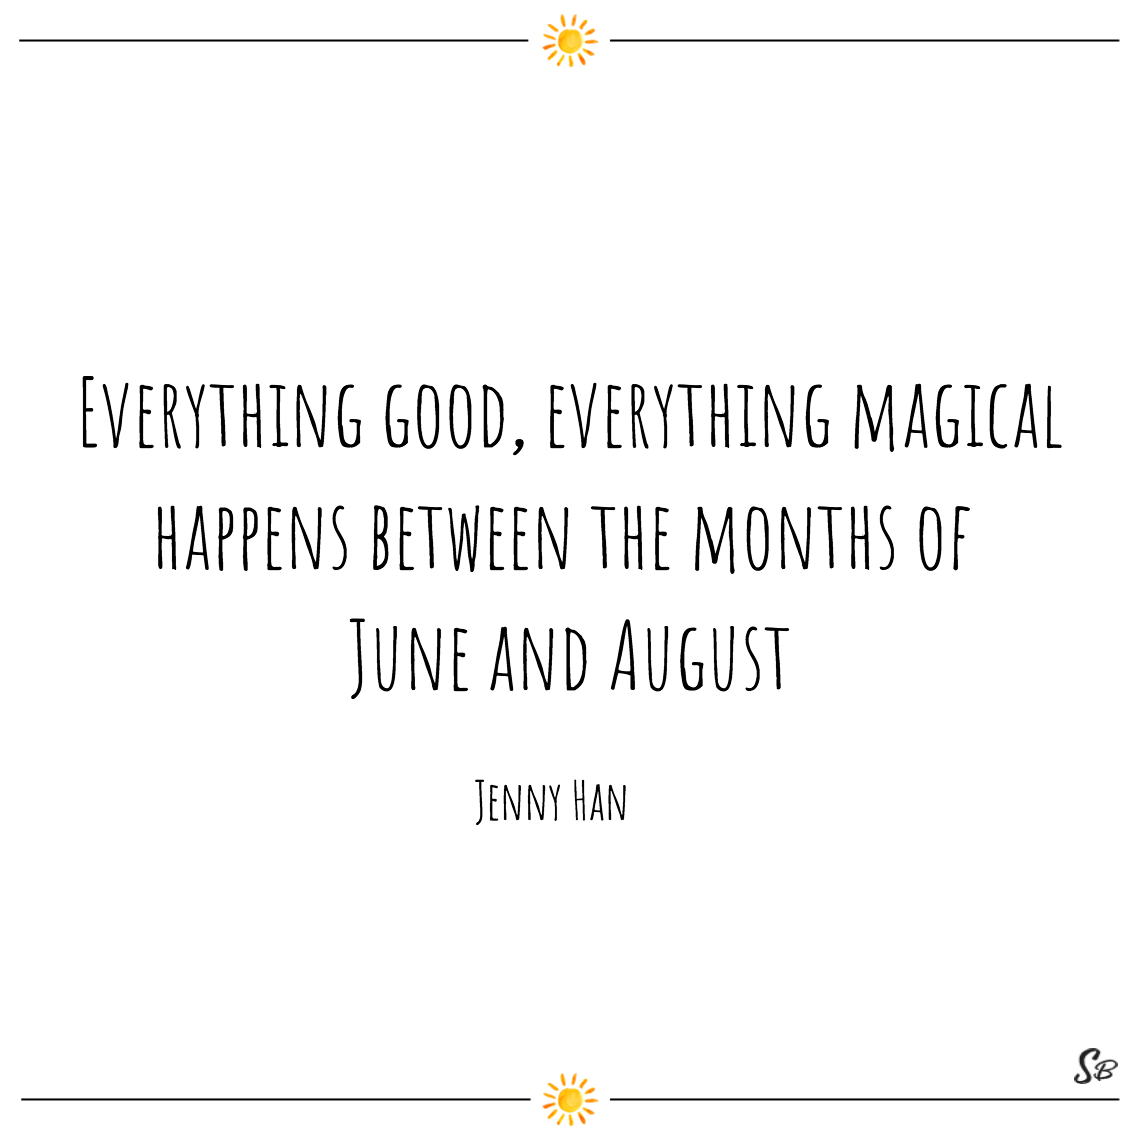 Everything good, everything magical happens between the months of june and august jenny han (1)